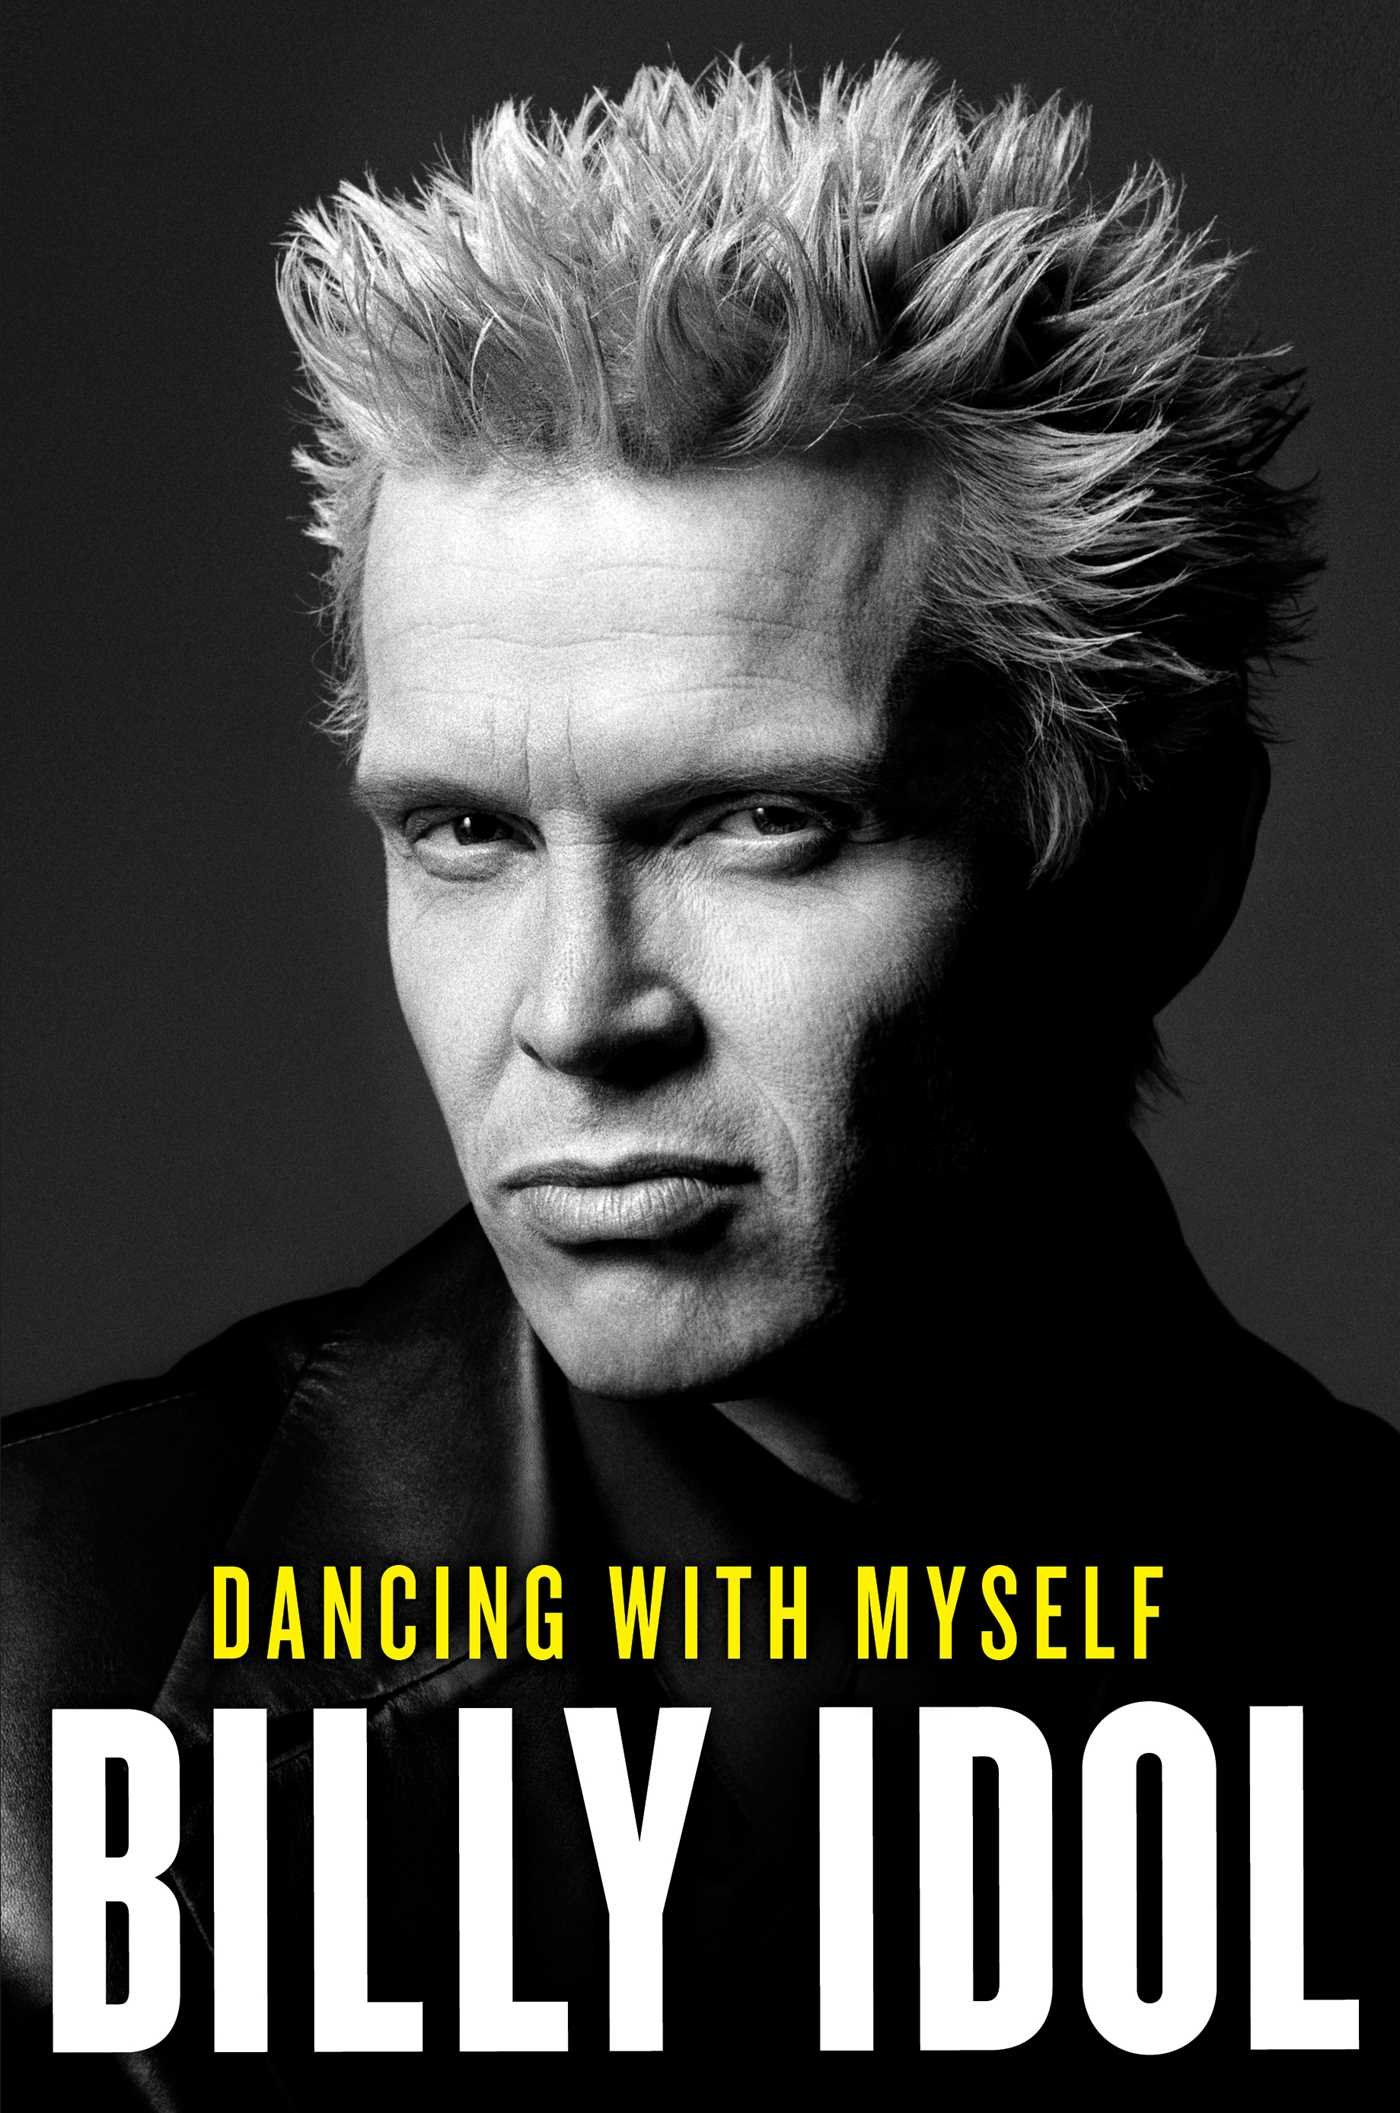 """Dancing With Myself"" by Billy Idol"